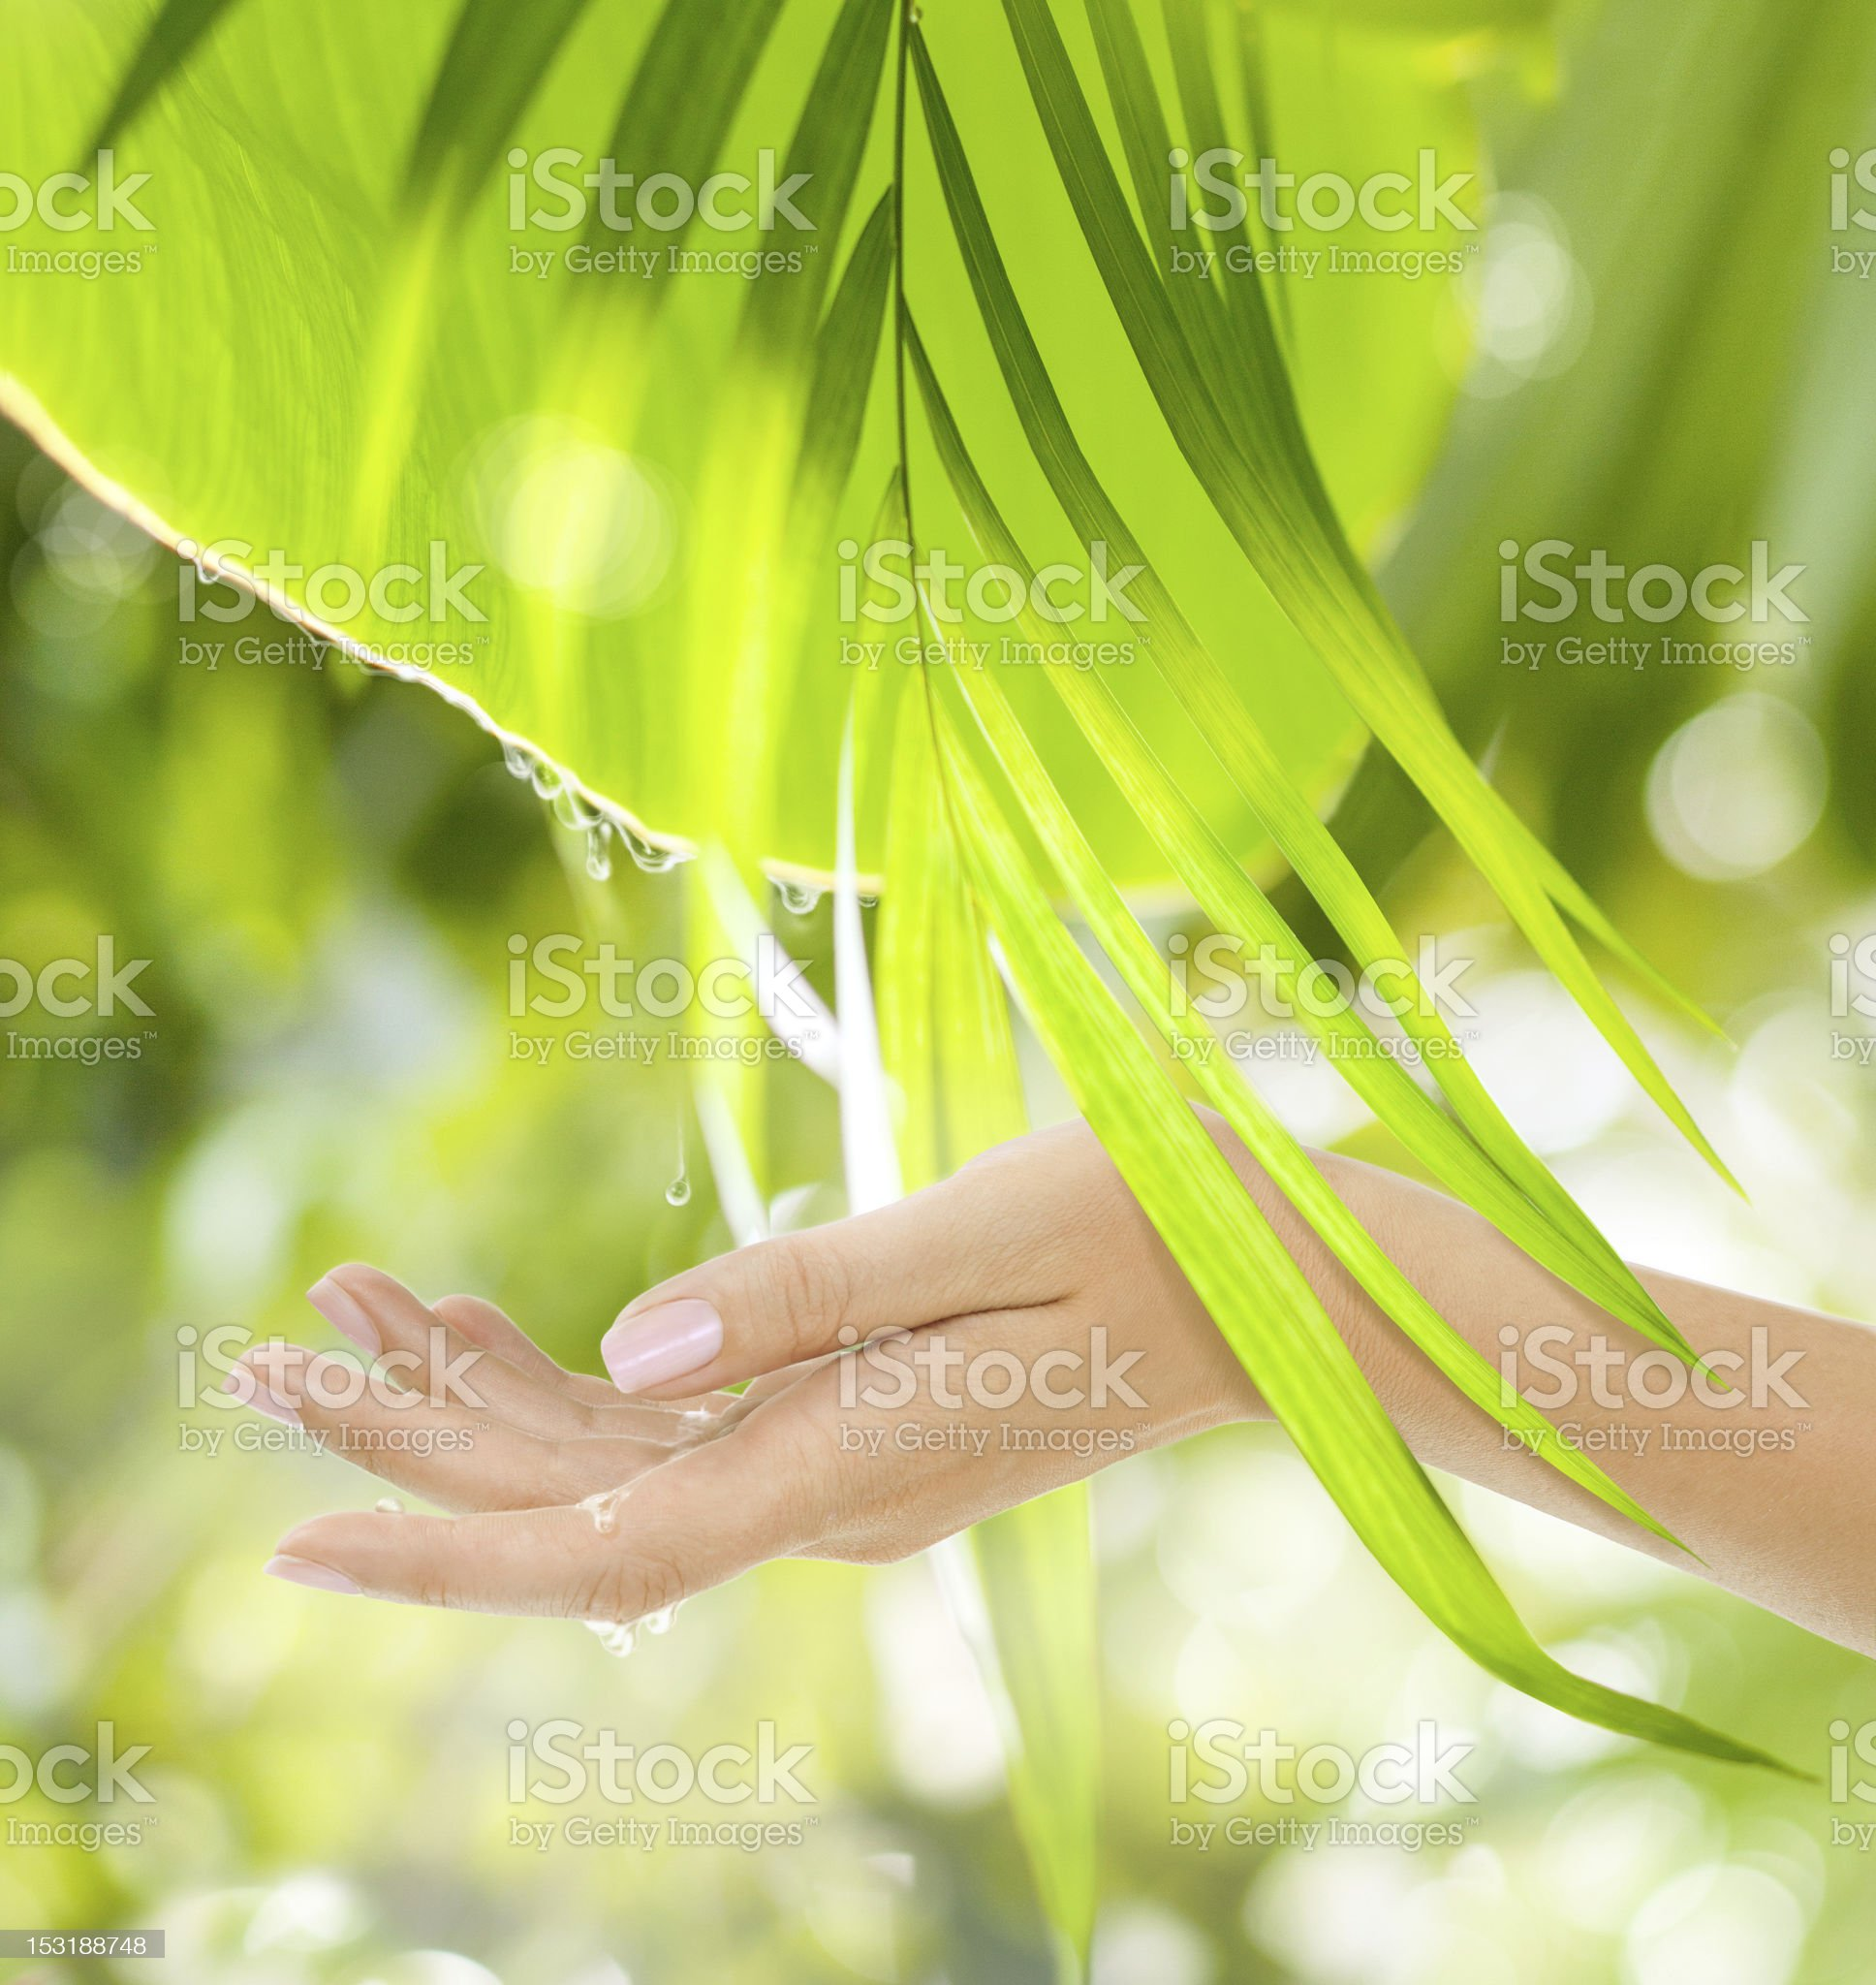 Beautiful Female Hand on the green background royalty-free stock photo